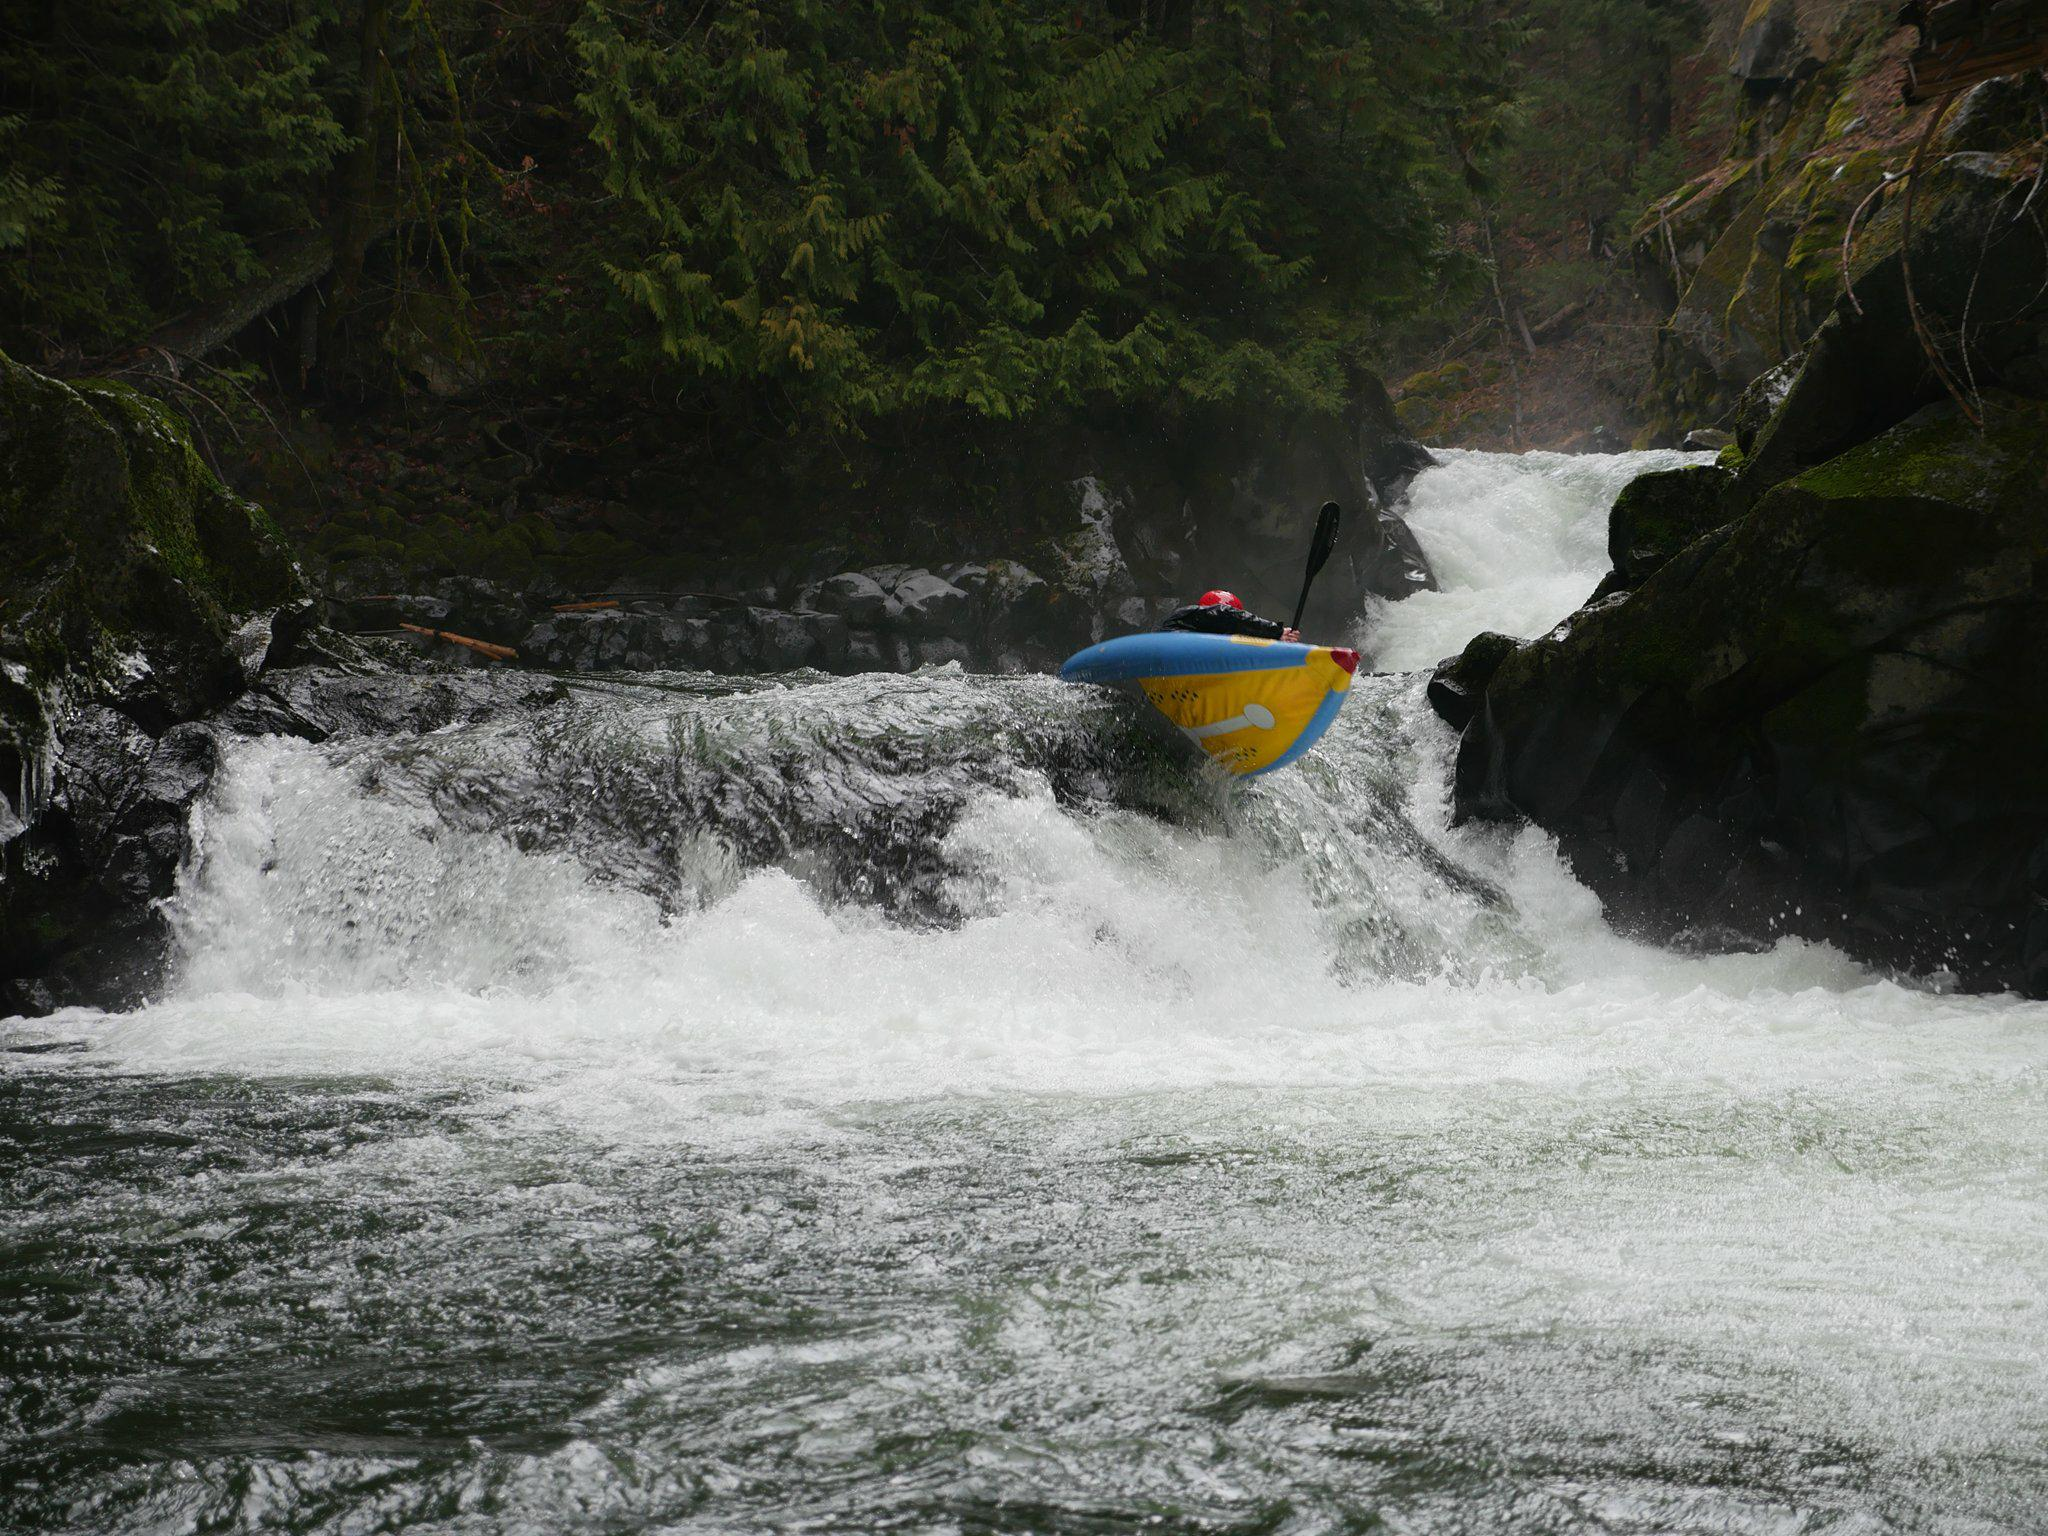 Stilletto Inflatable Kayak on the Green Truss section of the White Salmon River